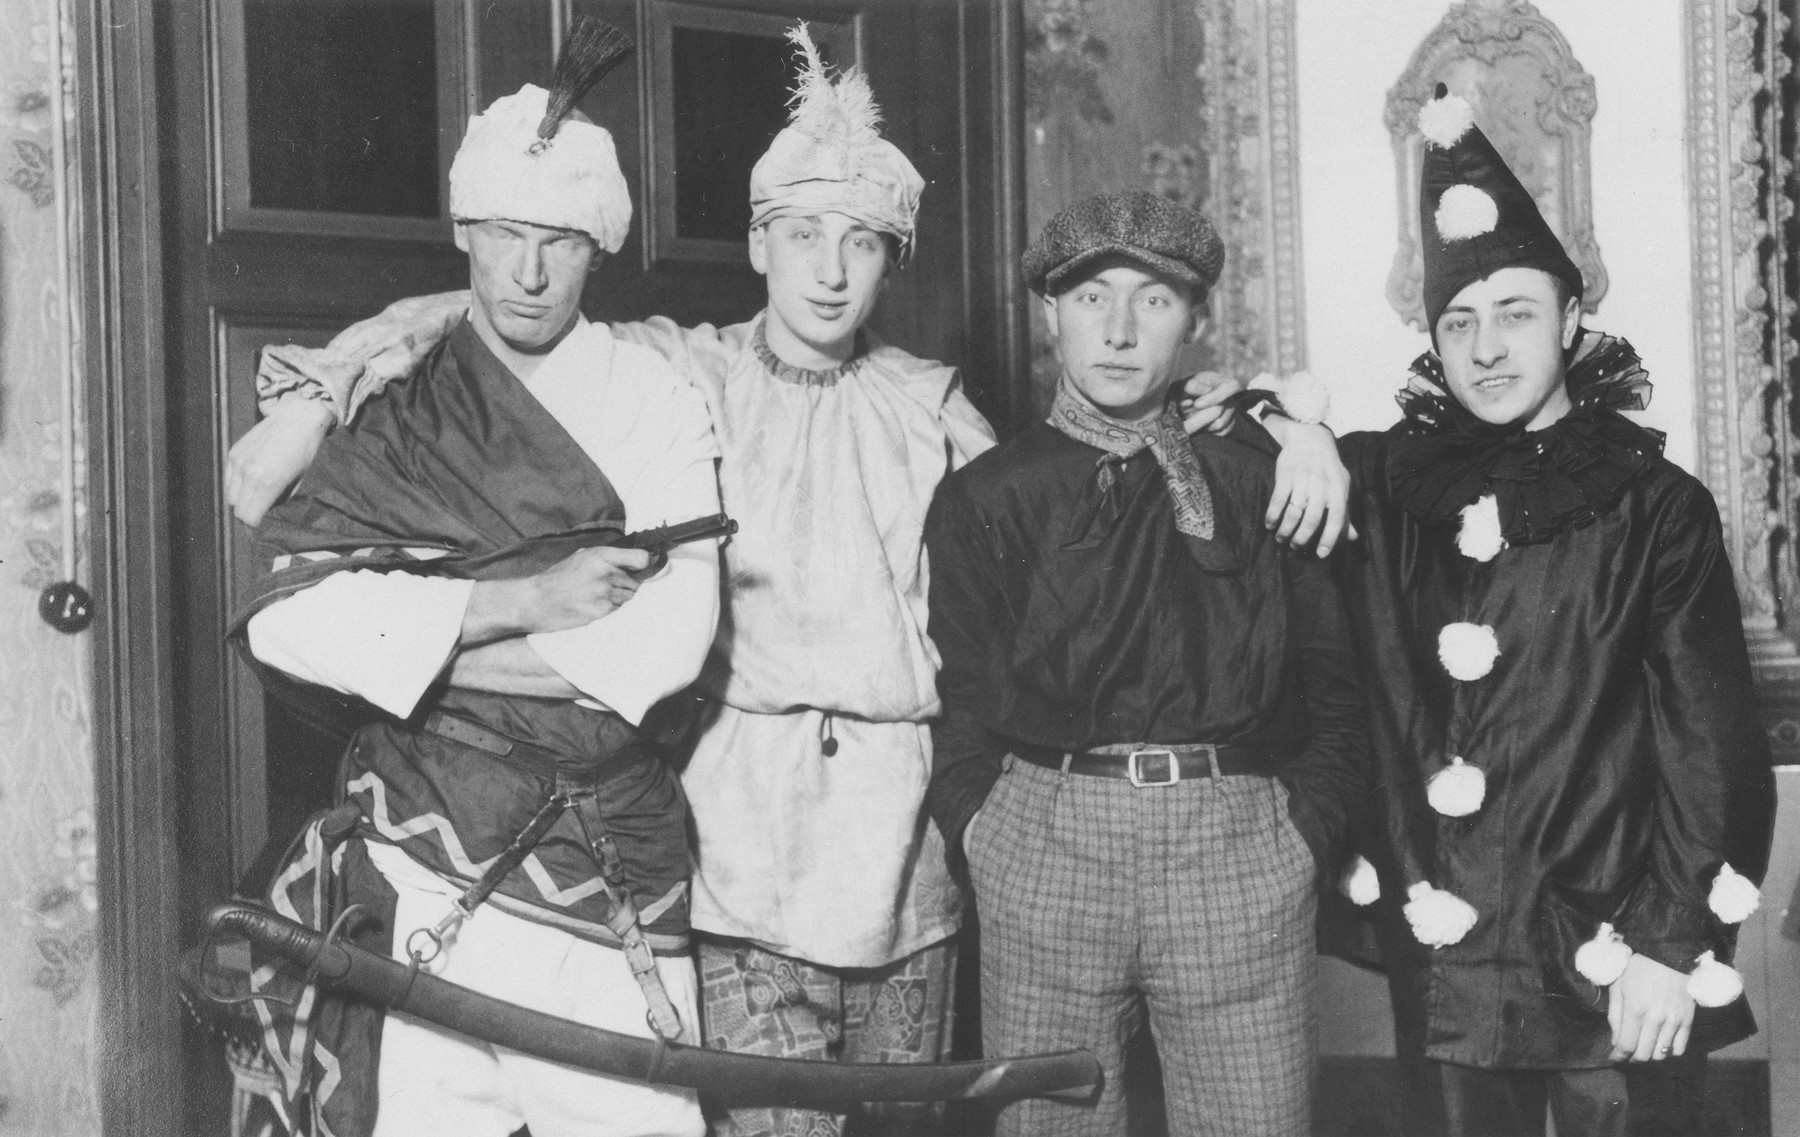 Herbert Mosheim (second from the left) poses in costume with a group of friends during a Fasching celebration.